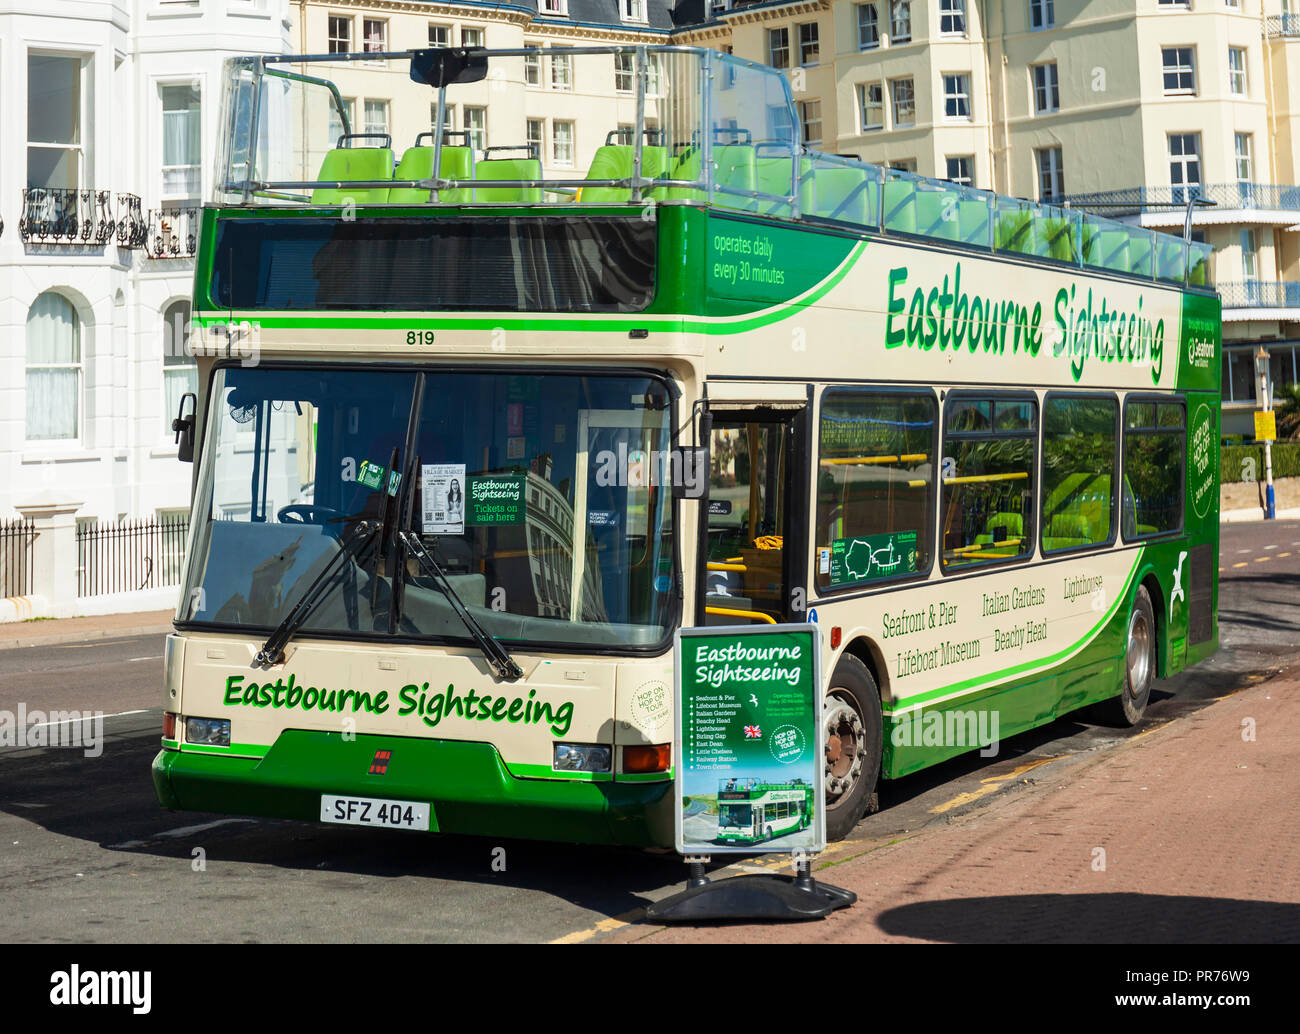 Eastbourne Sightseeing bus. - Stock Image